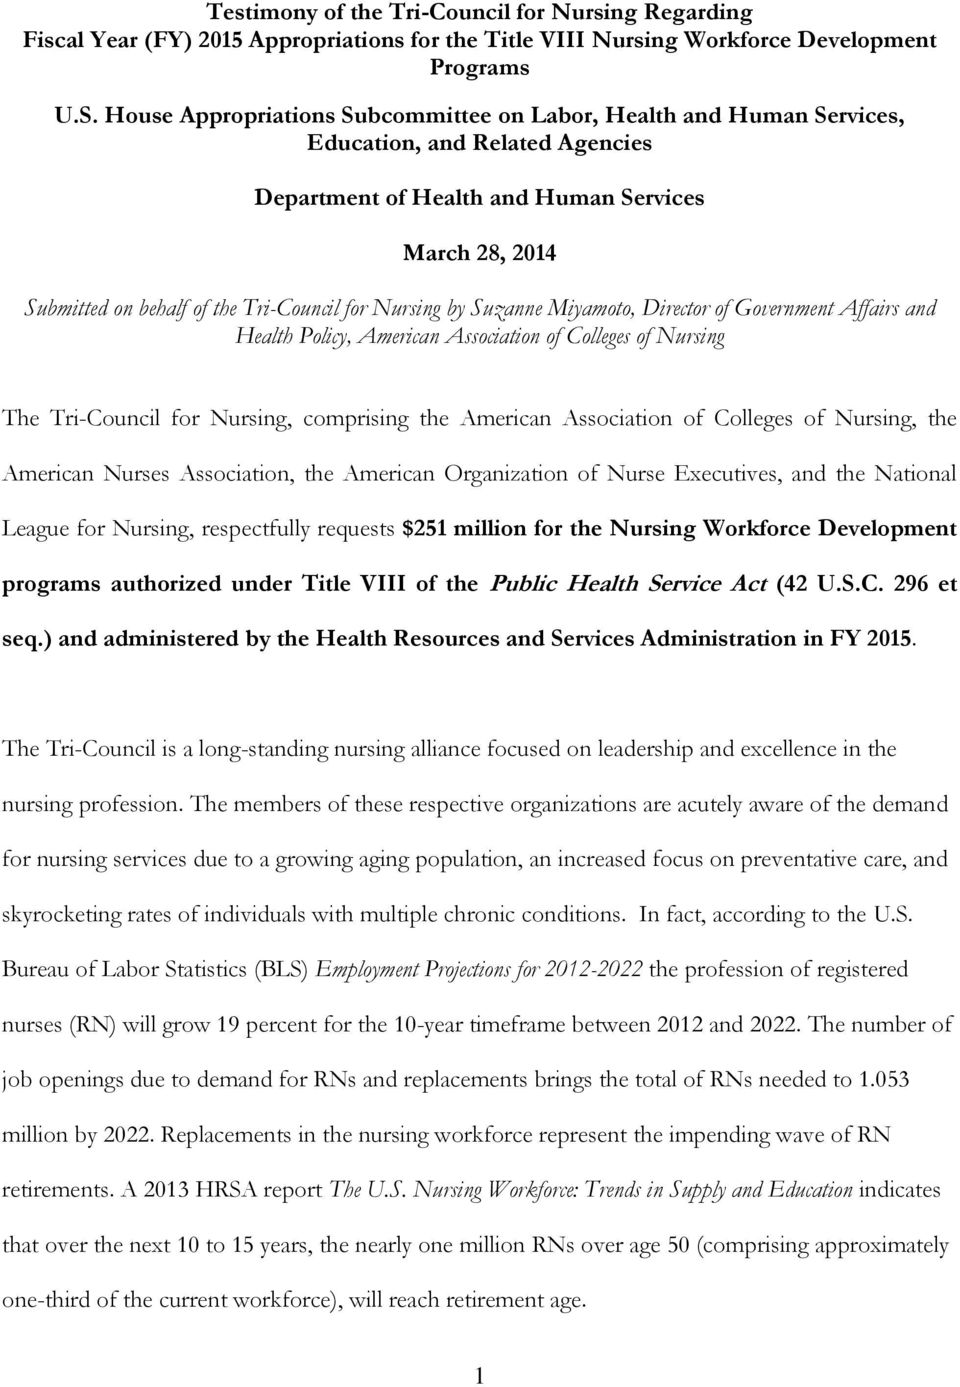 for Nursing by Suzanne Miyamoto, Director of Government Affairs and Health Policy, American Association of Colleges of Nursing The Tri-Council for Nursing, comprising the American Association of